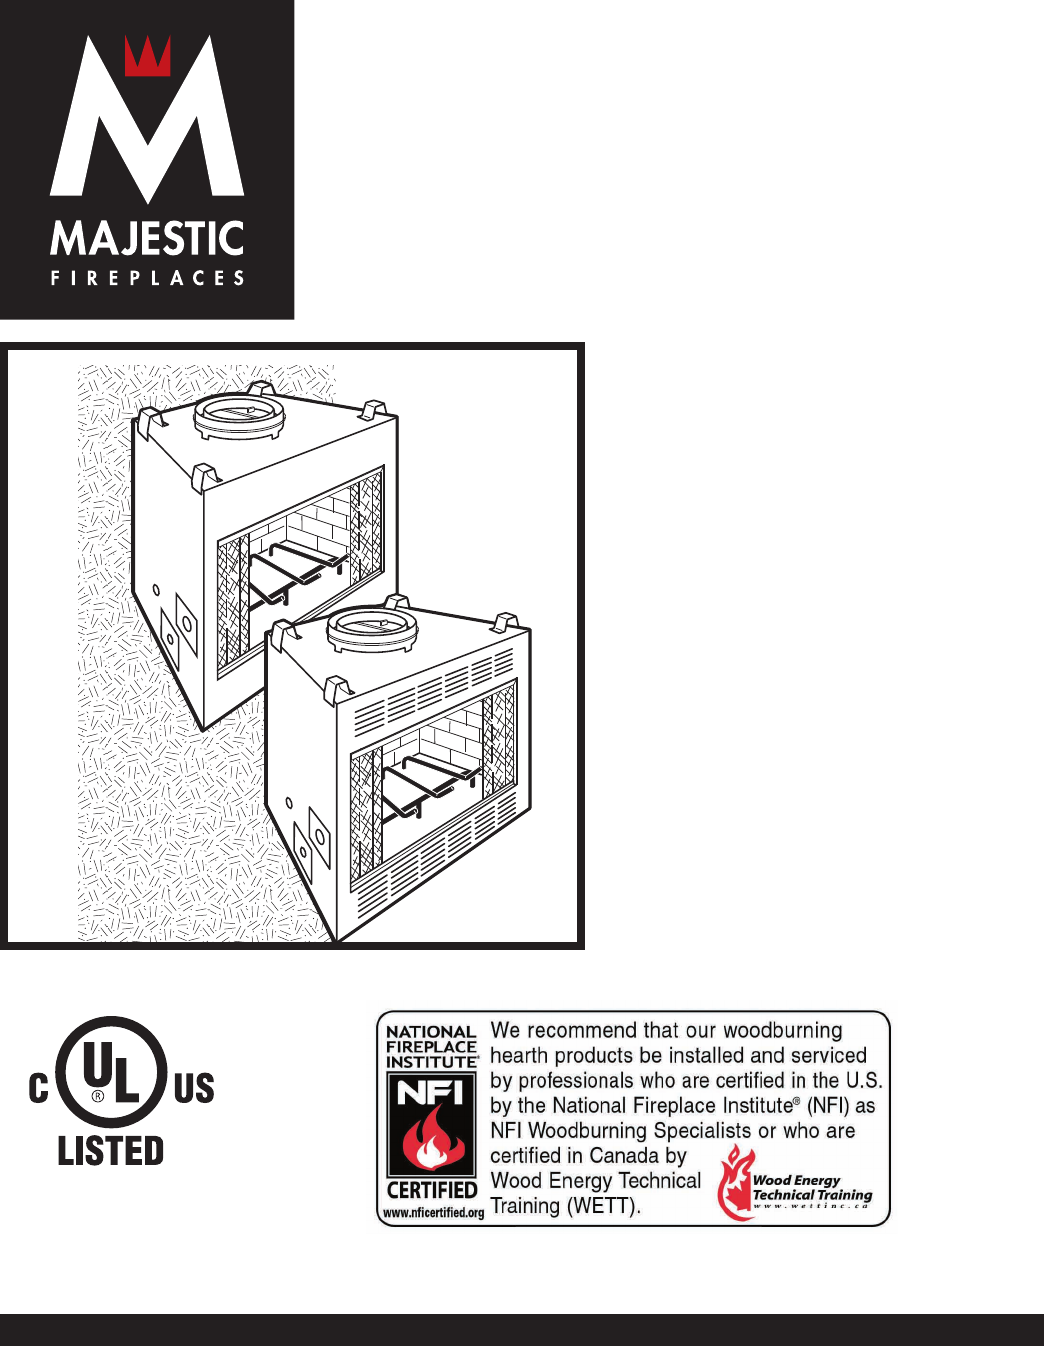 Majestic Appliances BR36 Indoor Fireplace User Manual on majestic fireplace parts, house diagram, chimney parts diagram, majestic fireplace blower, heart diagram, majestic fireplace design,